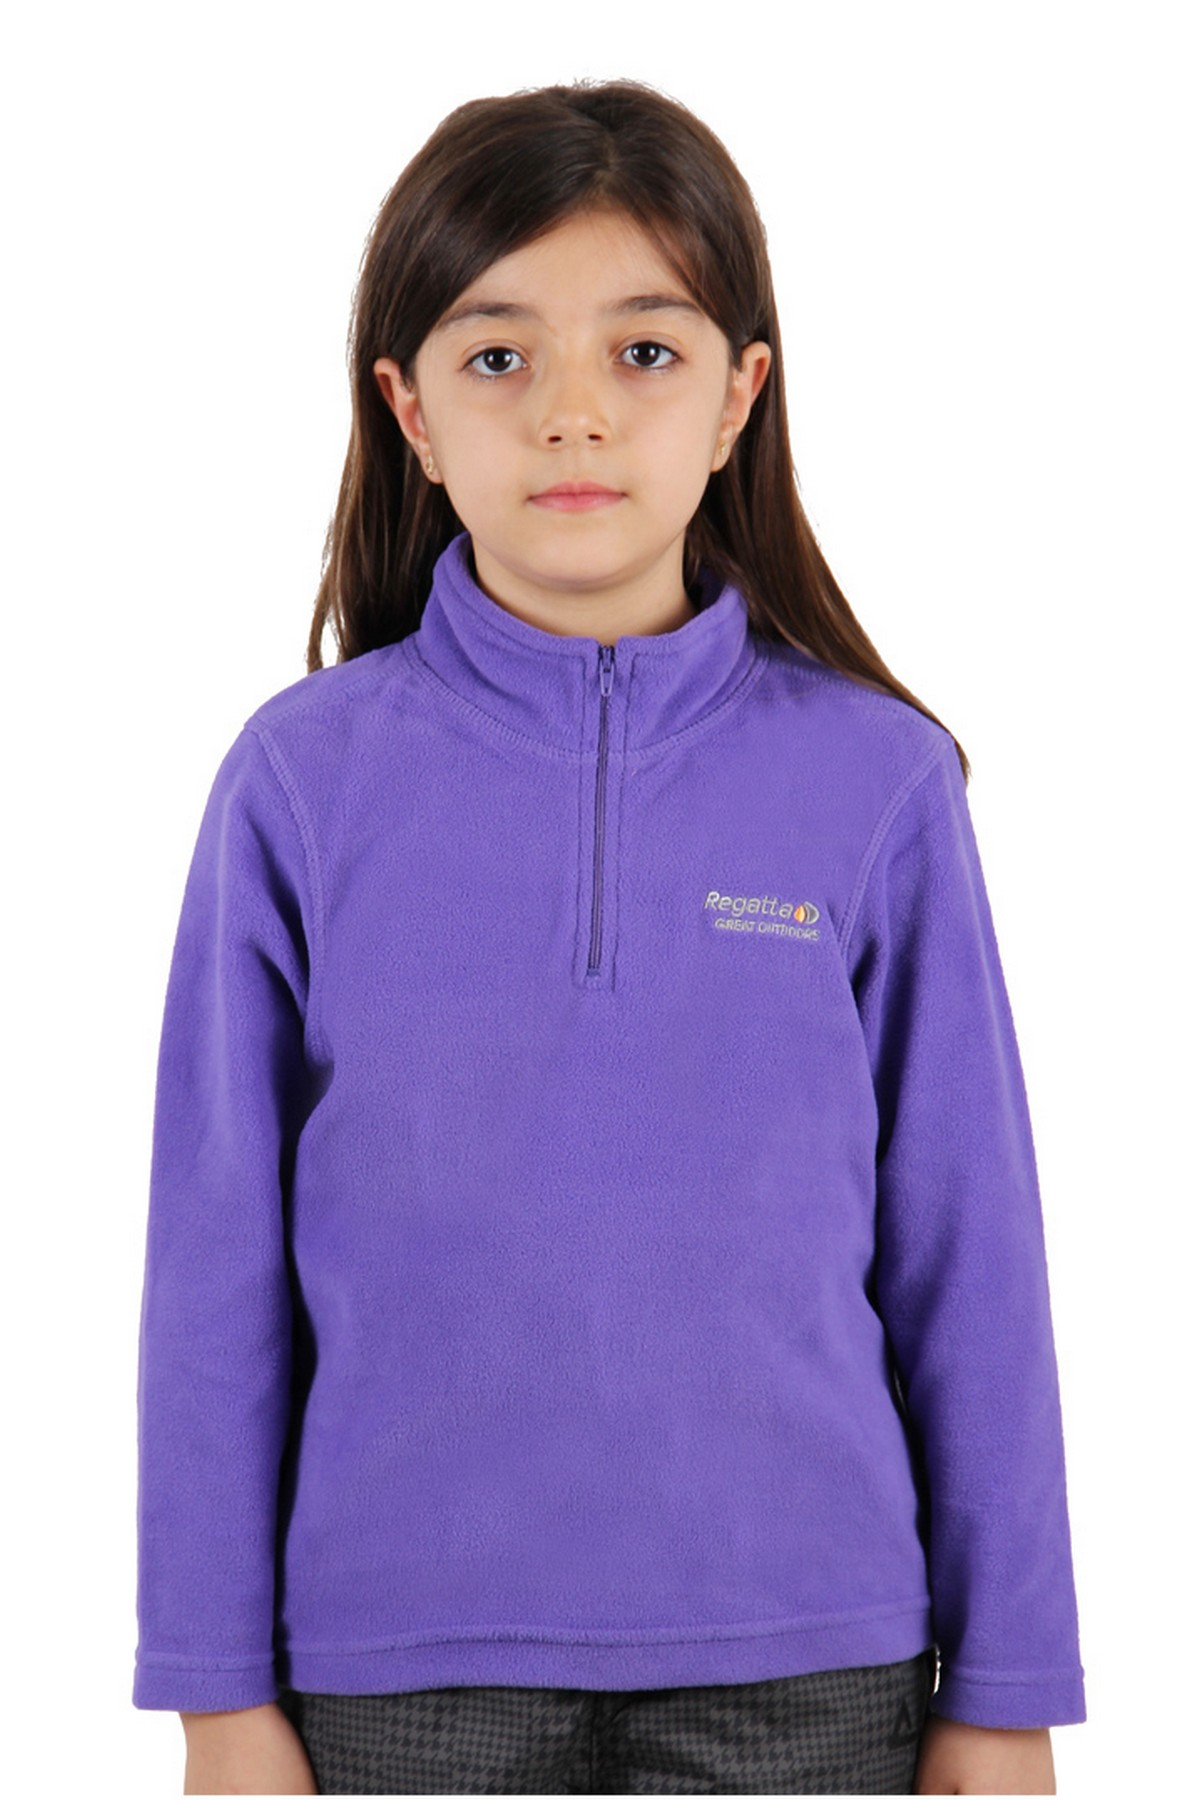 Regatta Kids RKA032-9MM